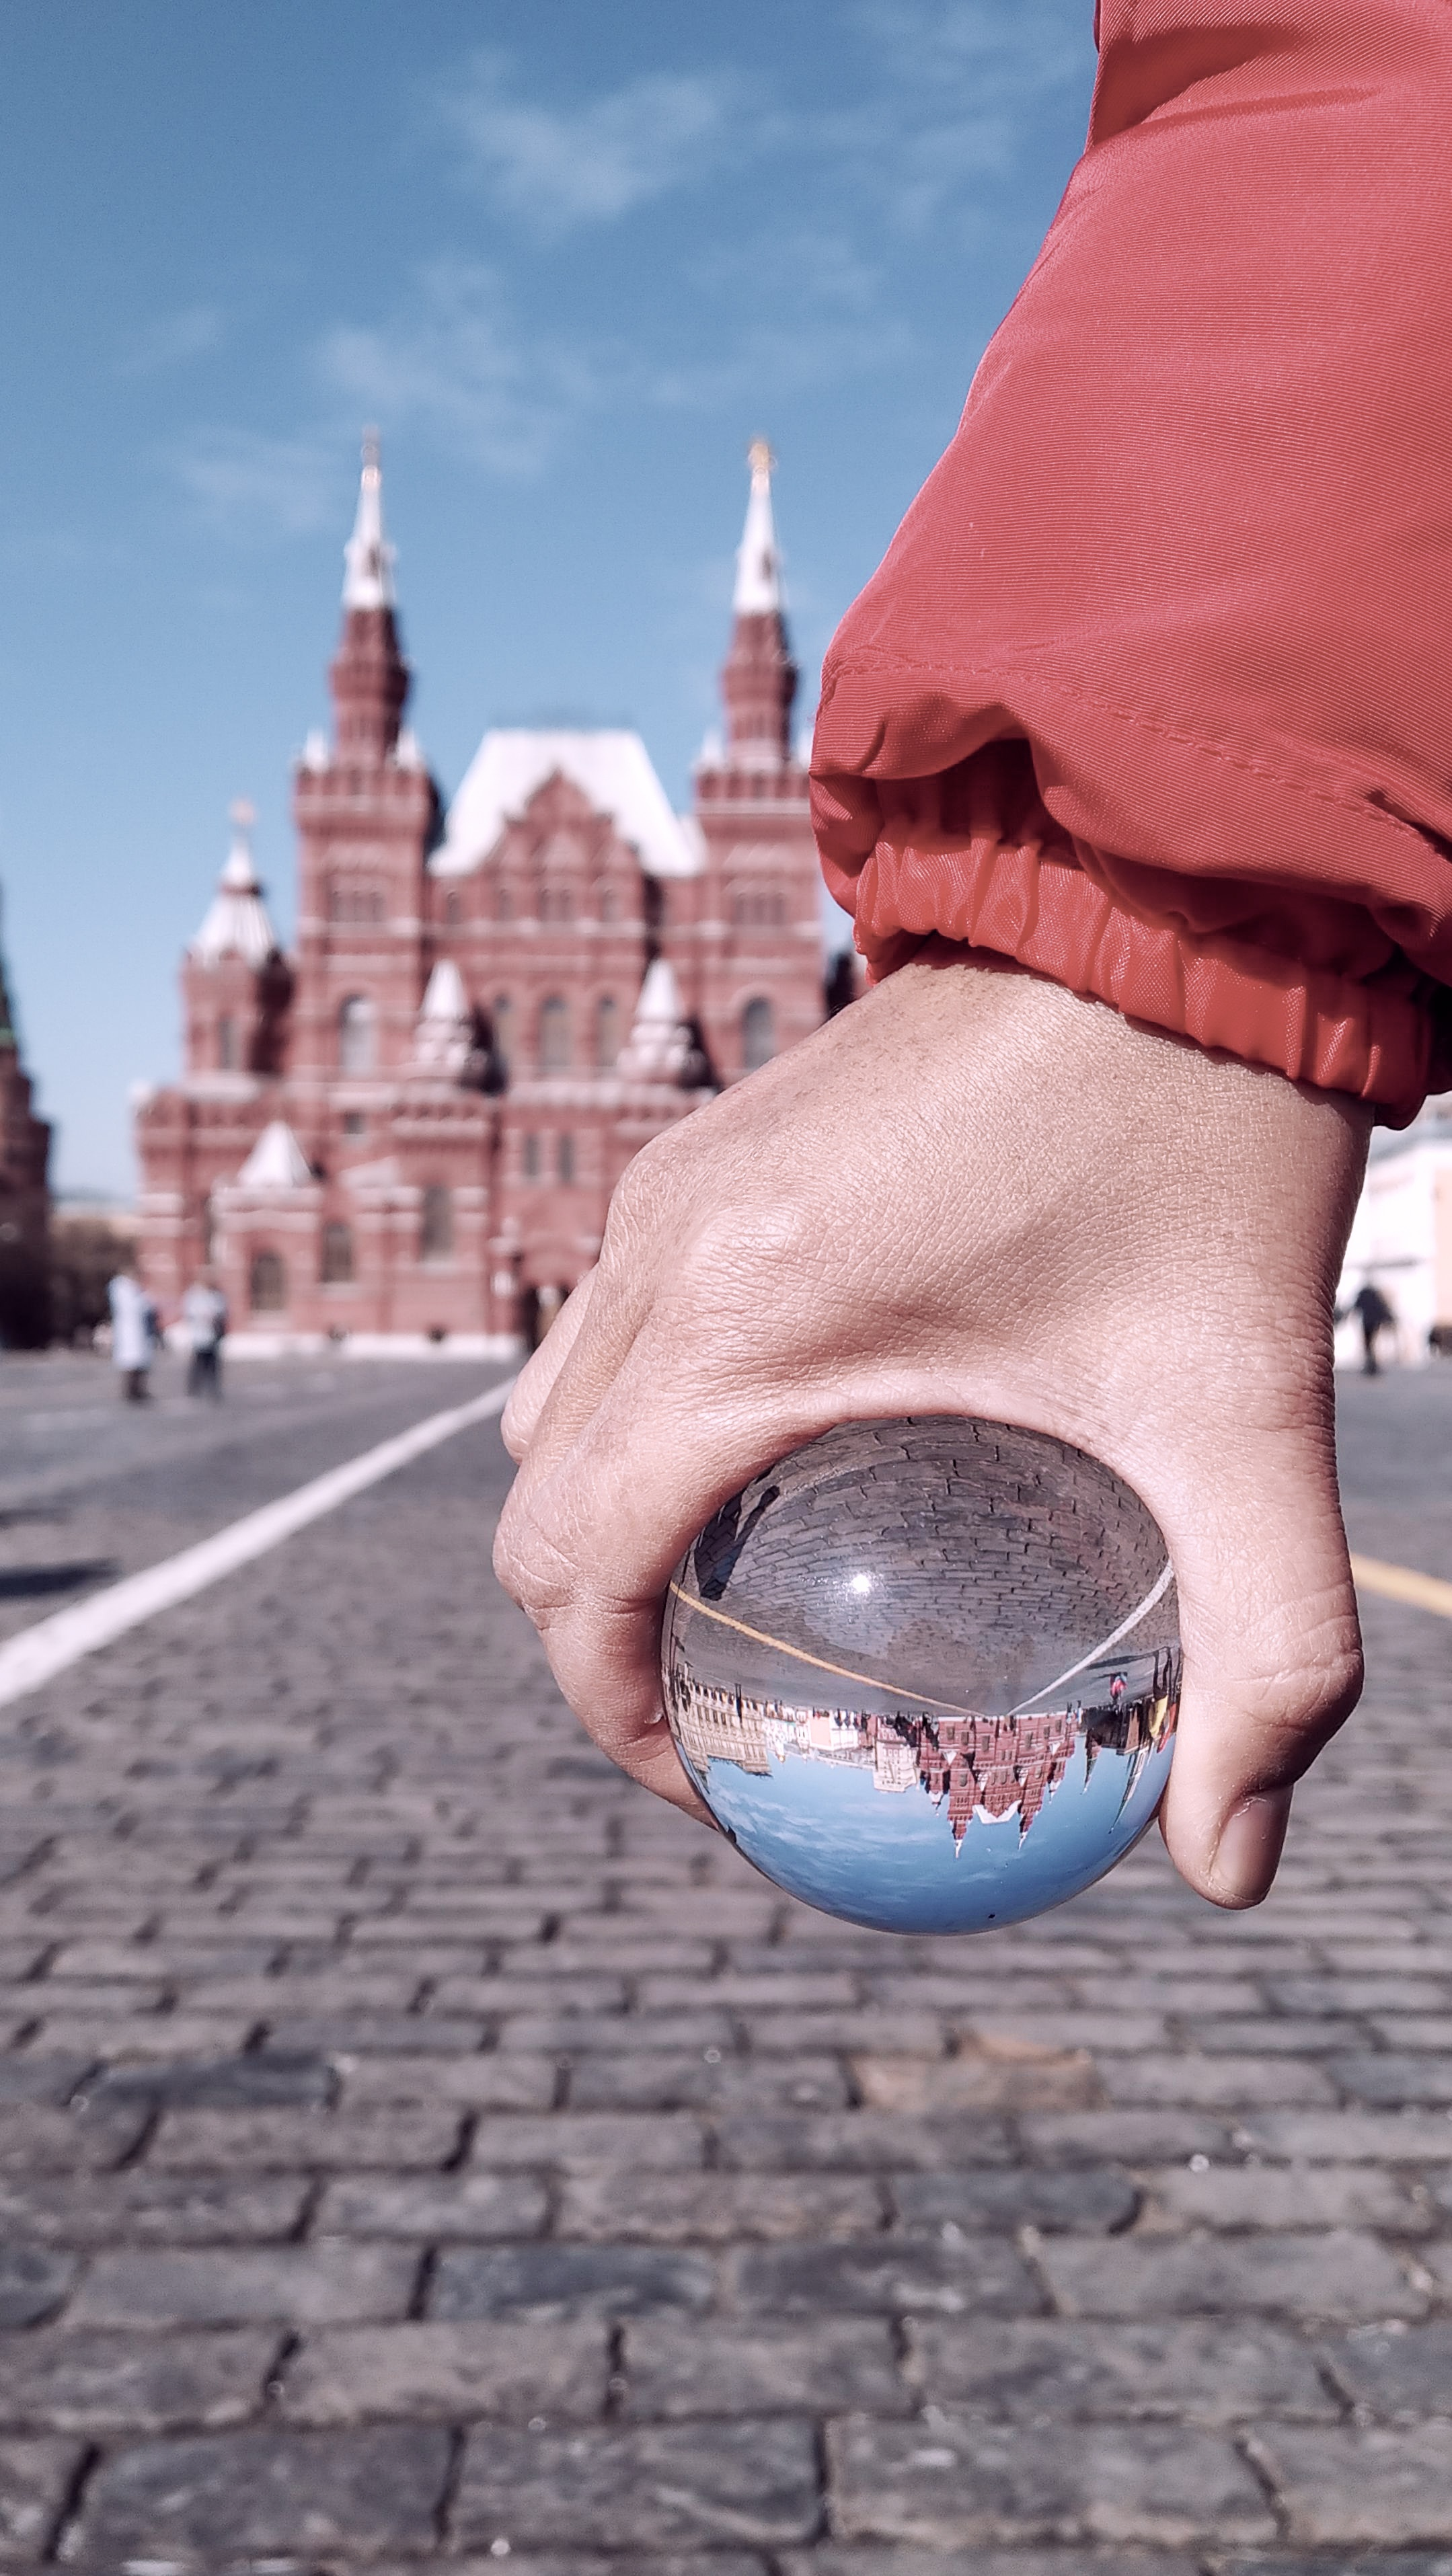 Red Square Mosqow